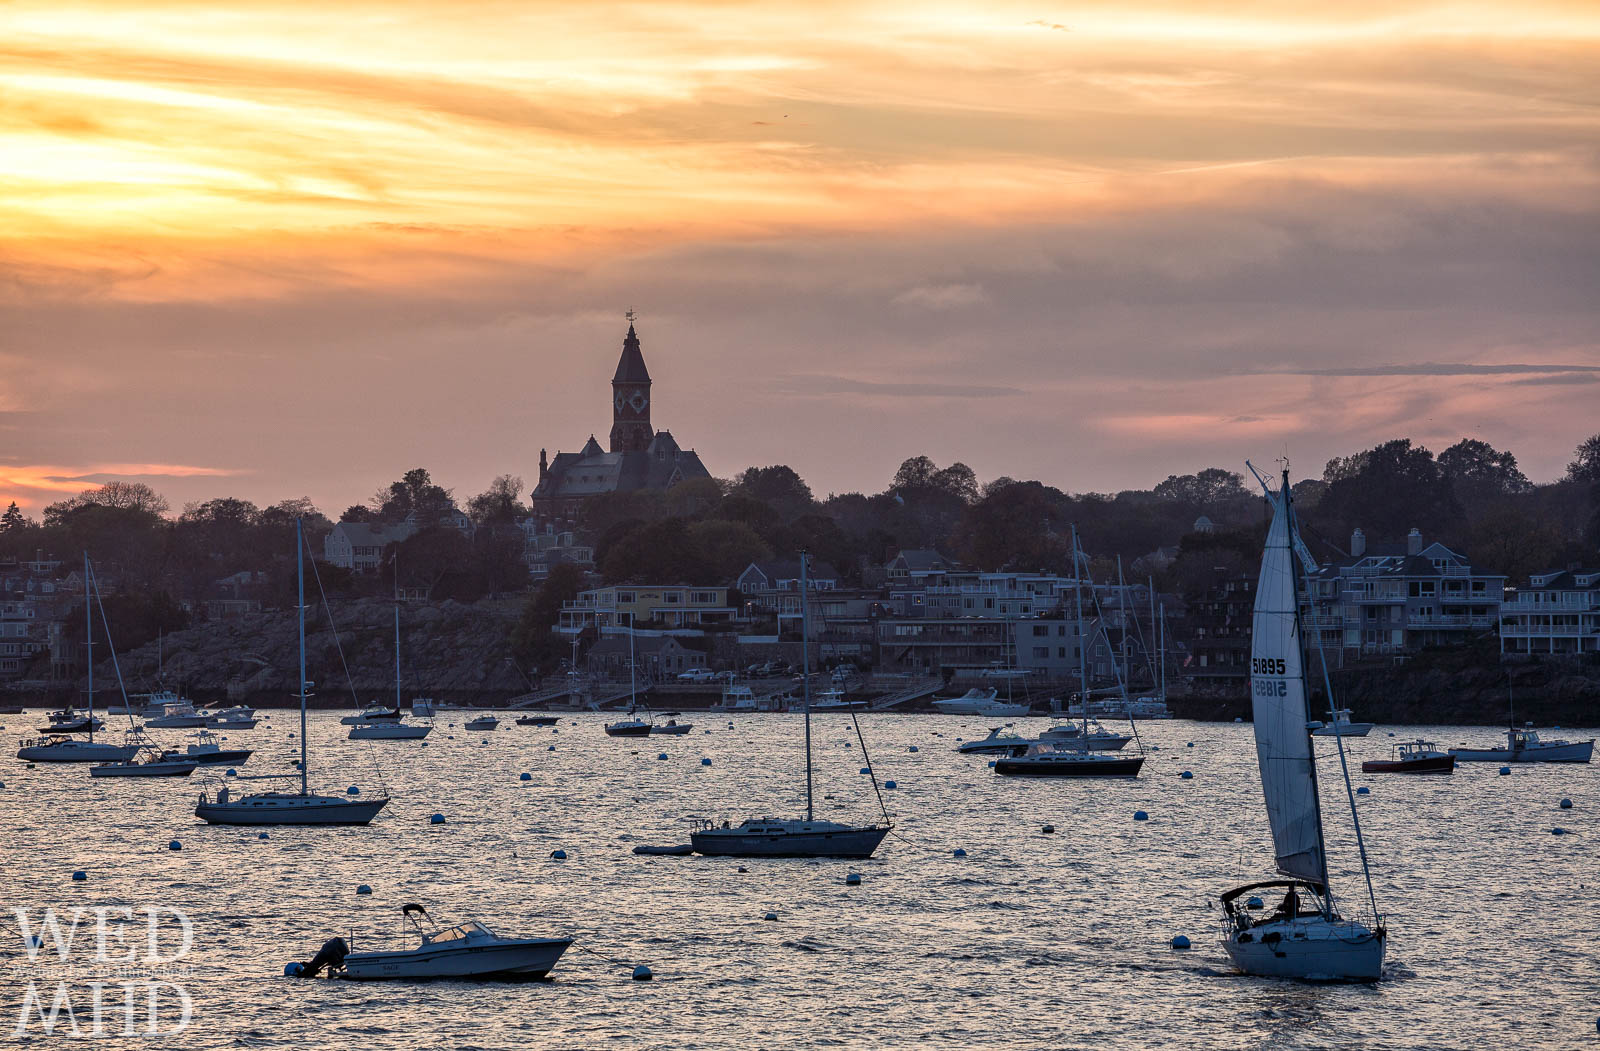 A lone boat heads out at sunset for one last sail in October with Abbot Hall and a few boats setting the backdrop